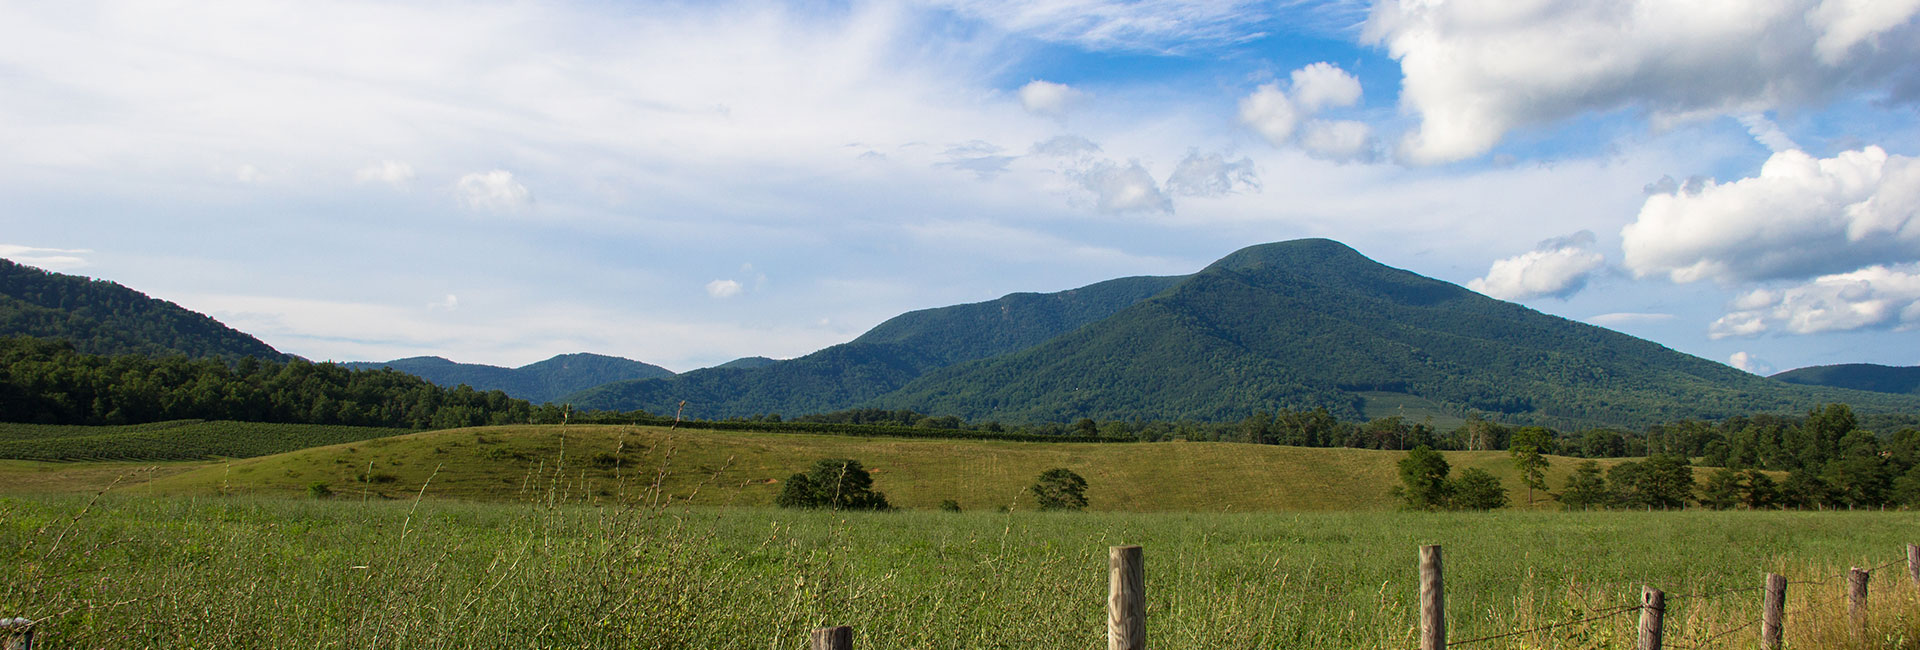 Horse field with the Blue Ridge Mountains in the background